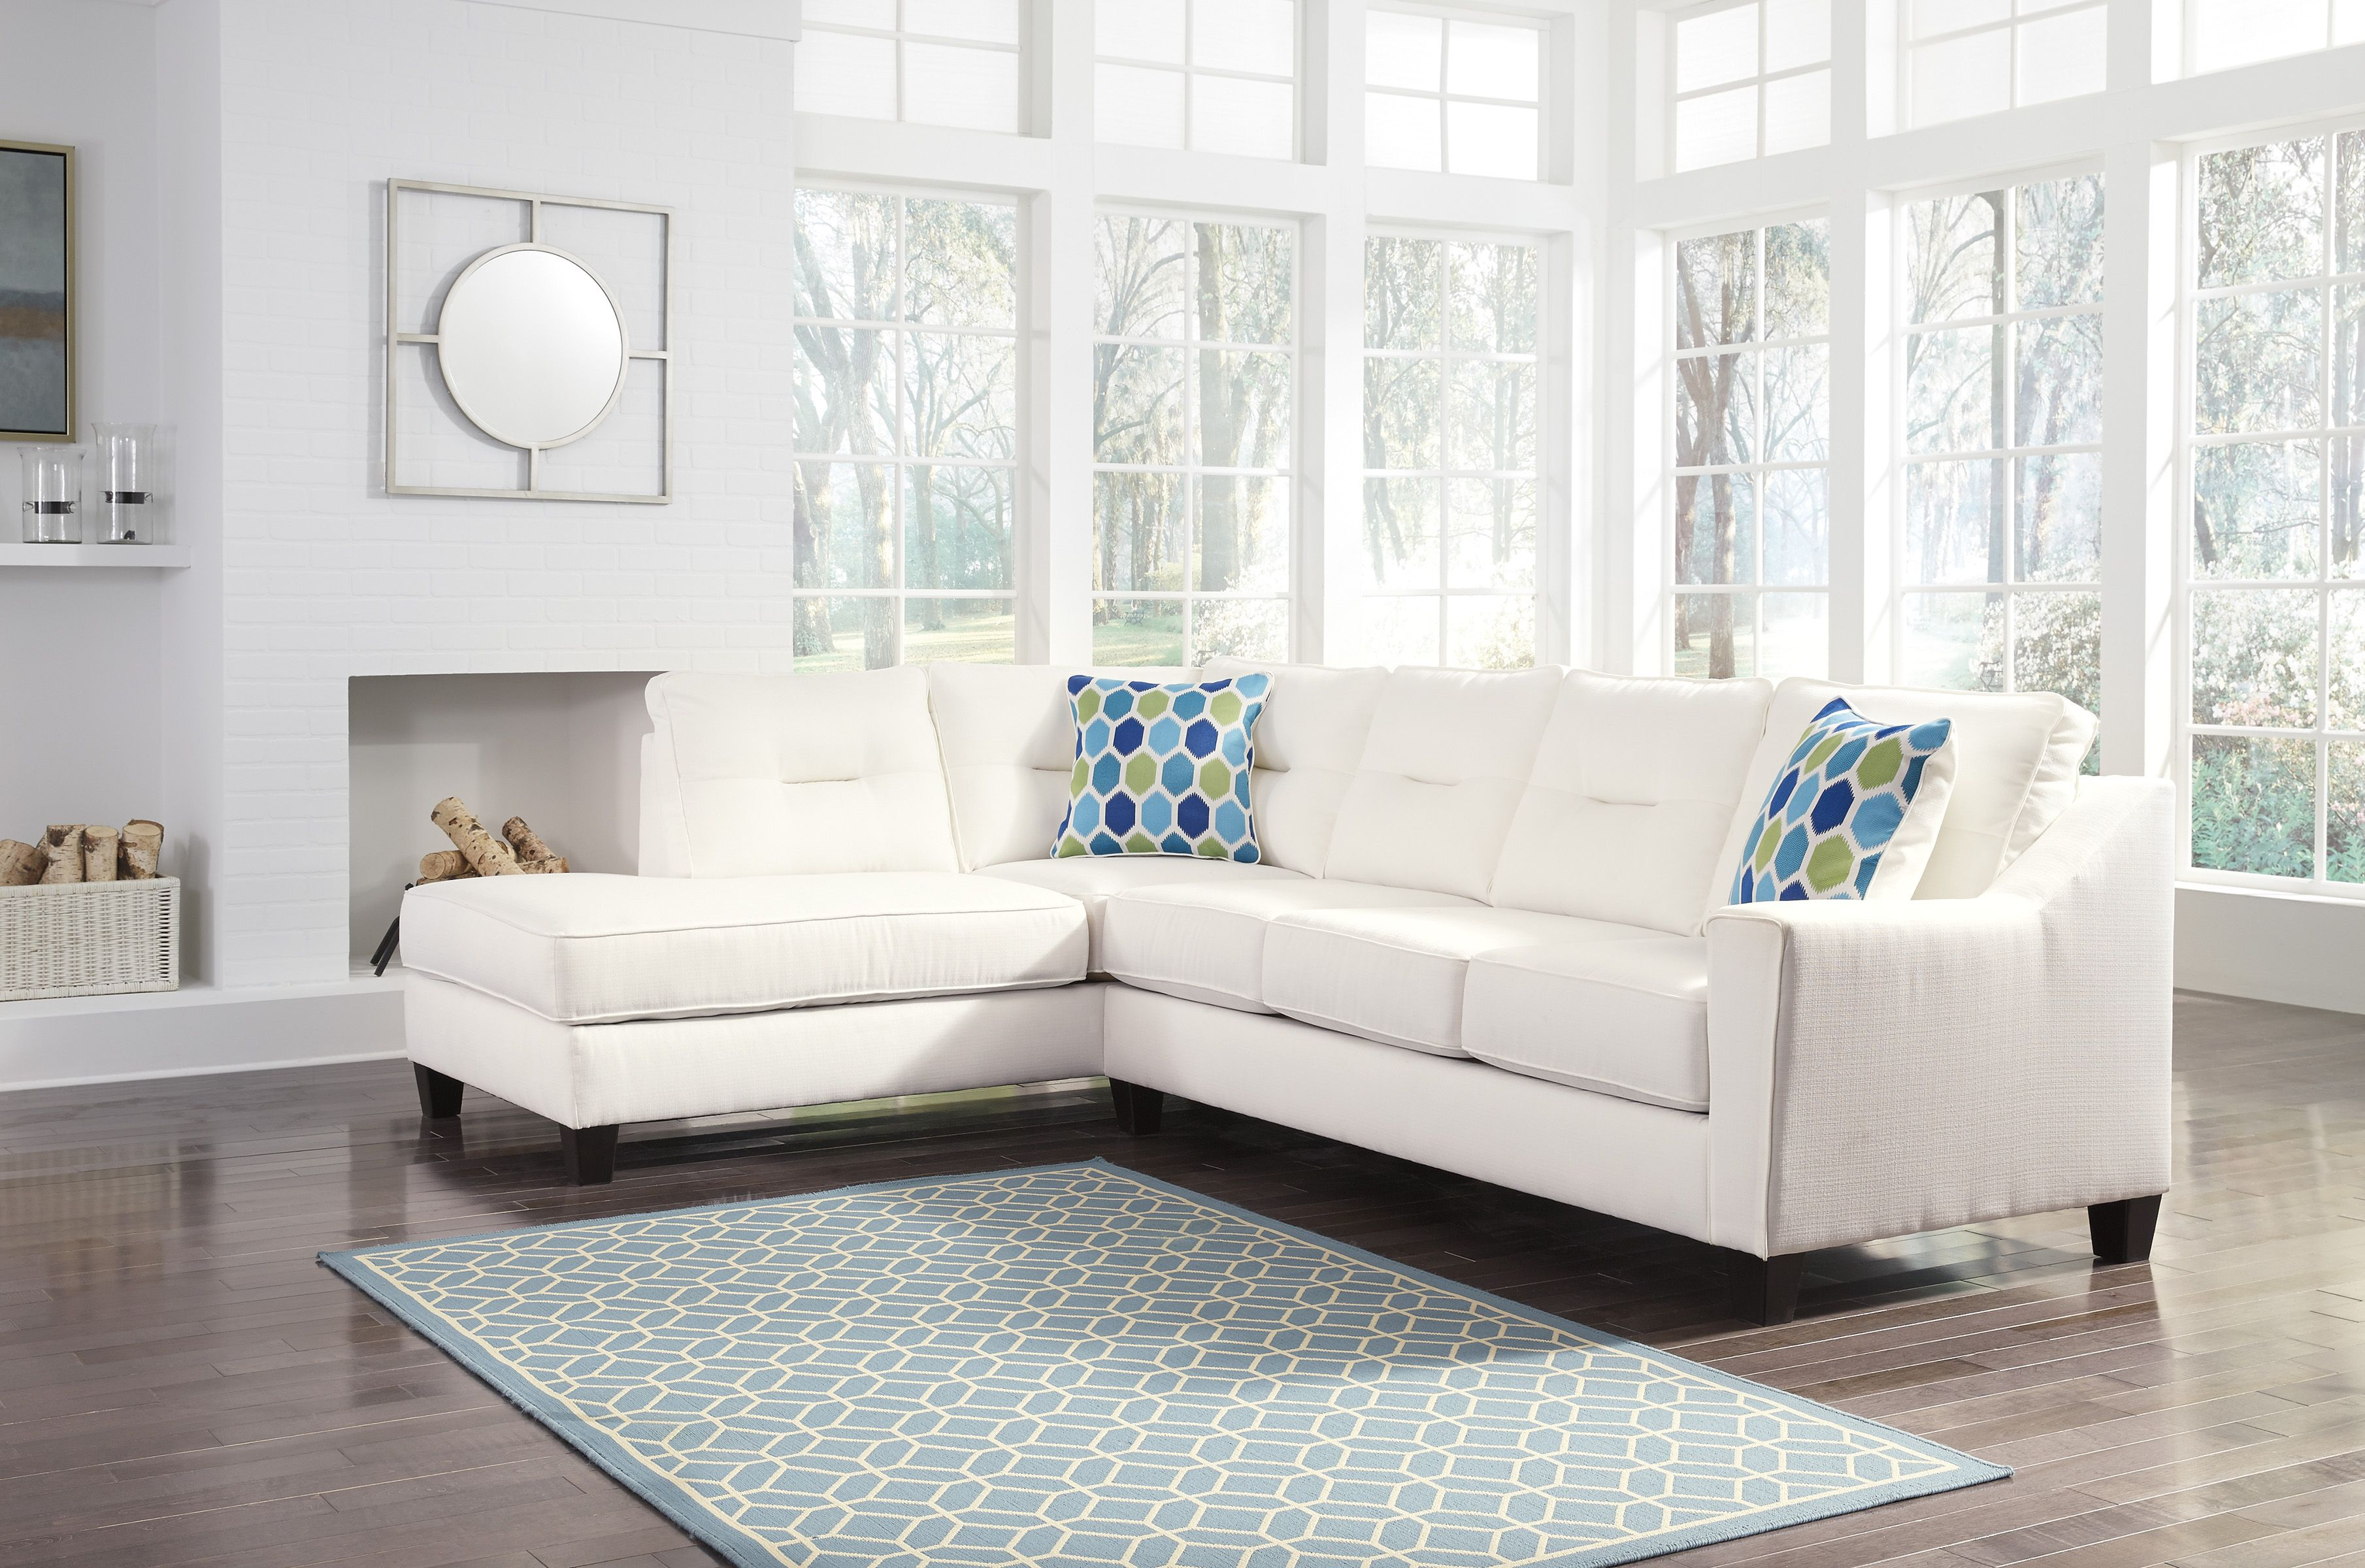 Kirwin White Sectional 99602 By Ashley Furniture Sectional Modern